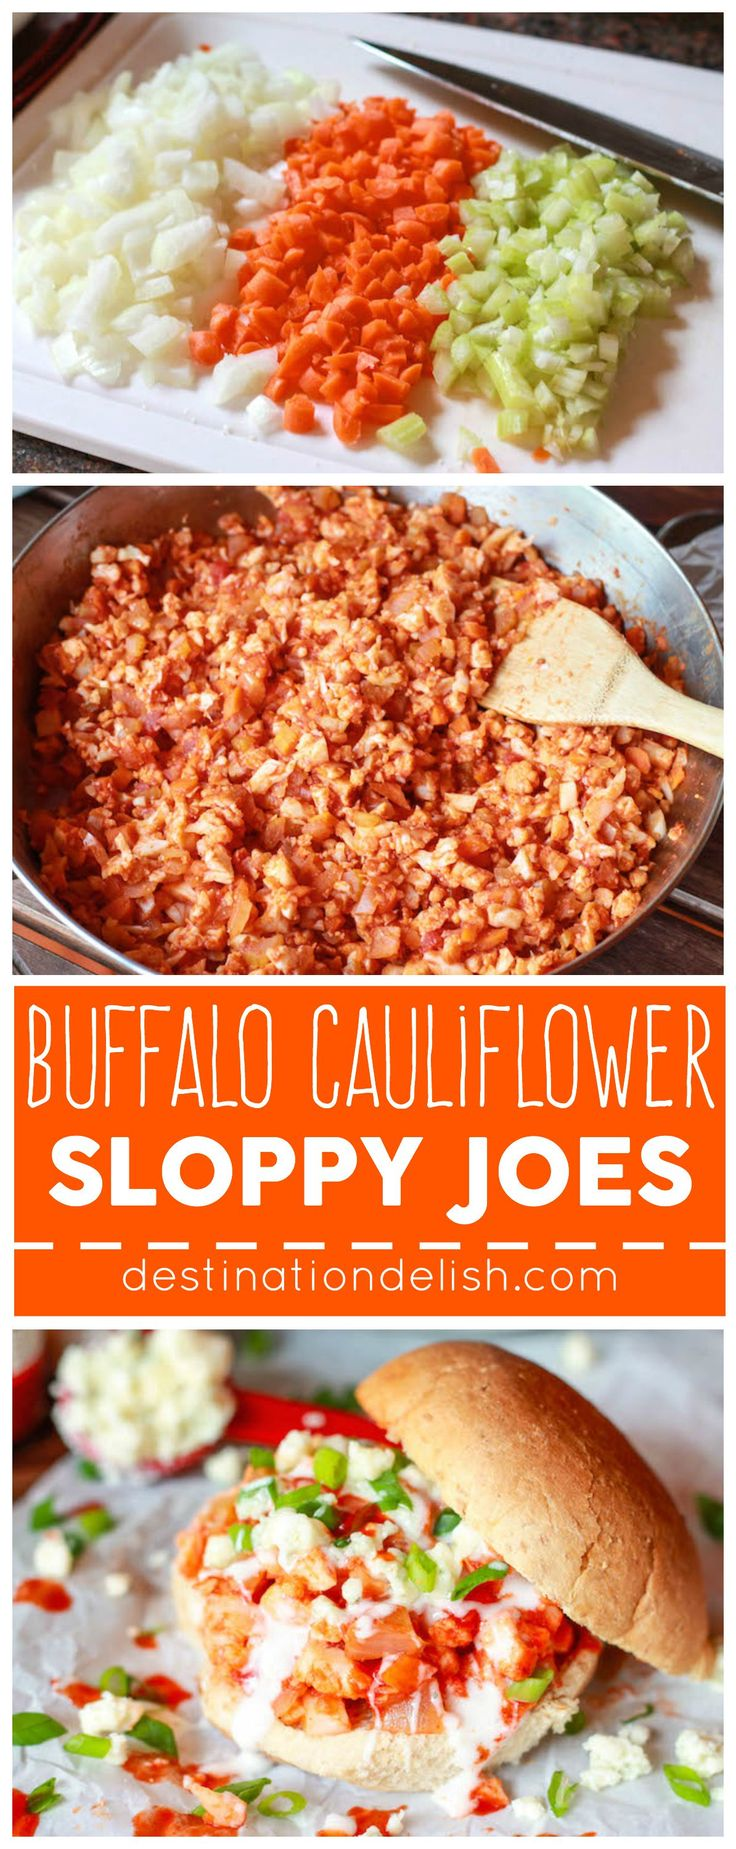 Buffalo Cauliflower Sloppy Joes - A healthy and meatless buffalo-wing inspired recipe made with cauliflower, onions, carrots, and celery